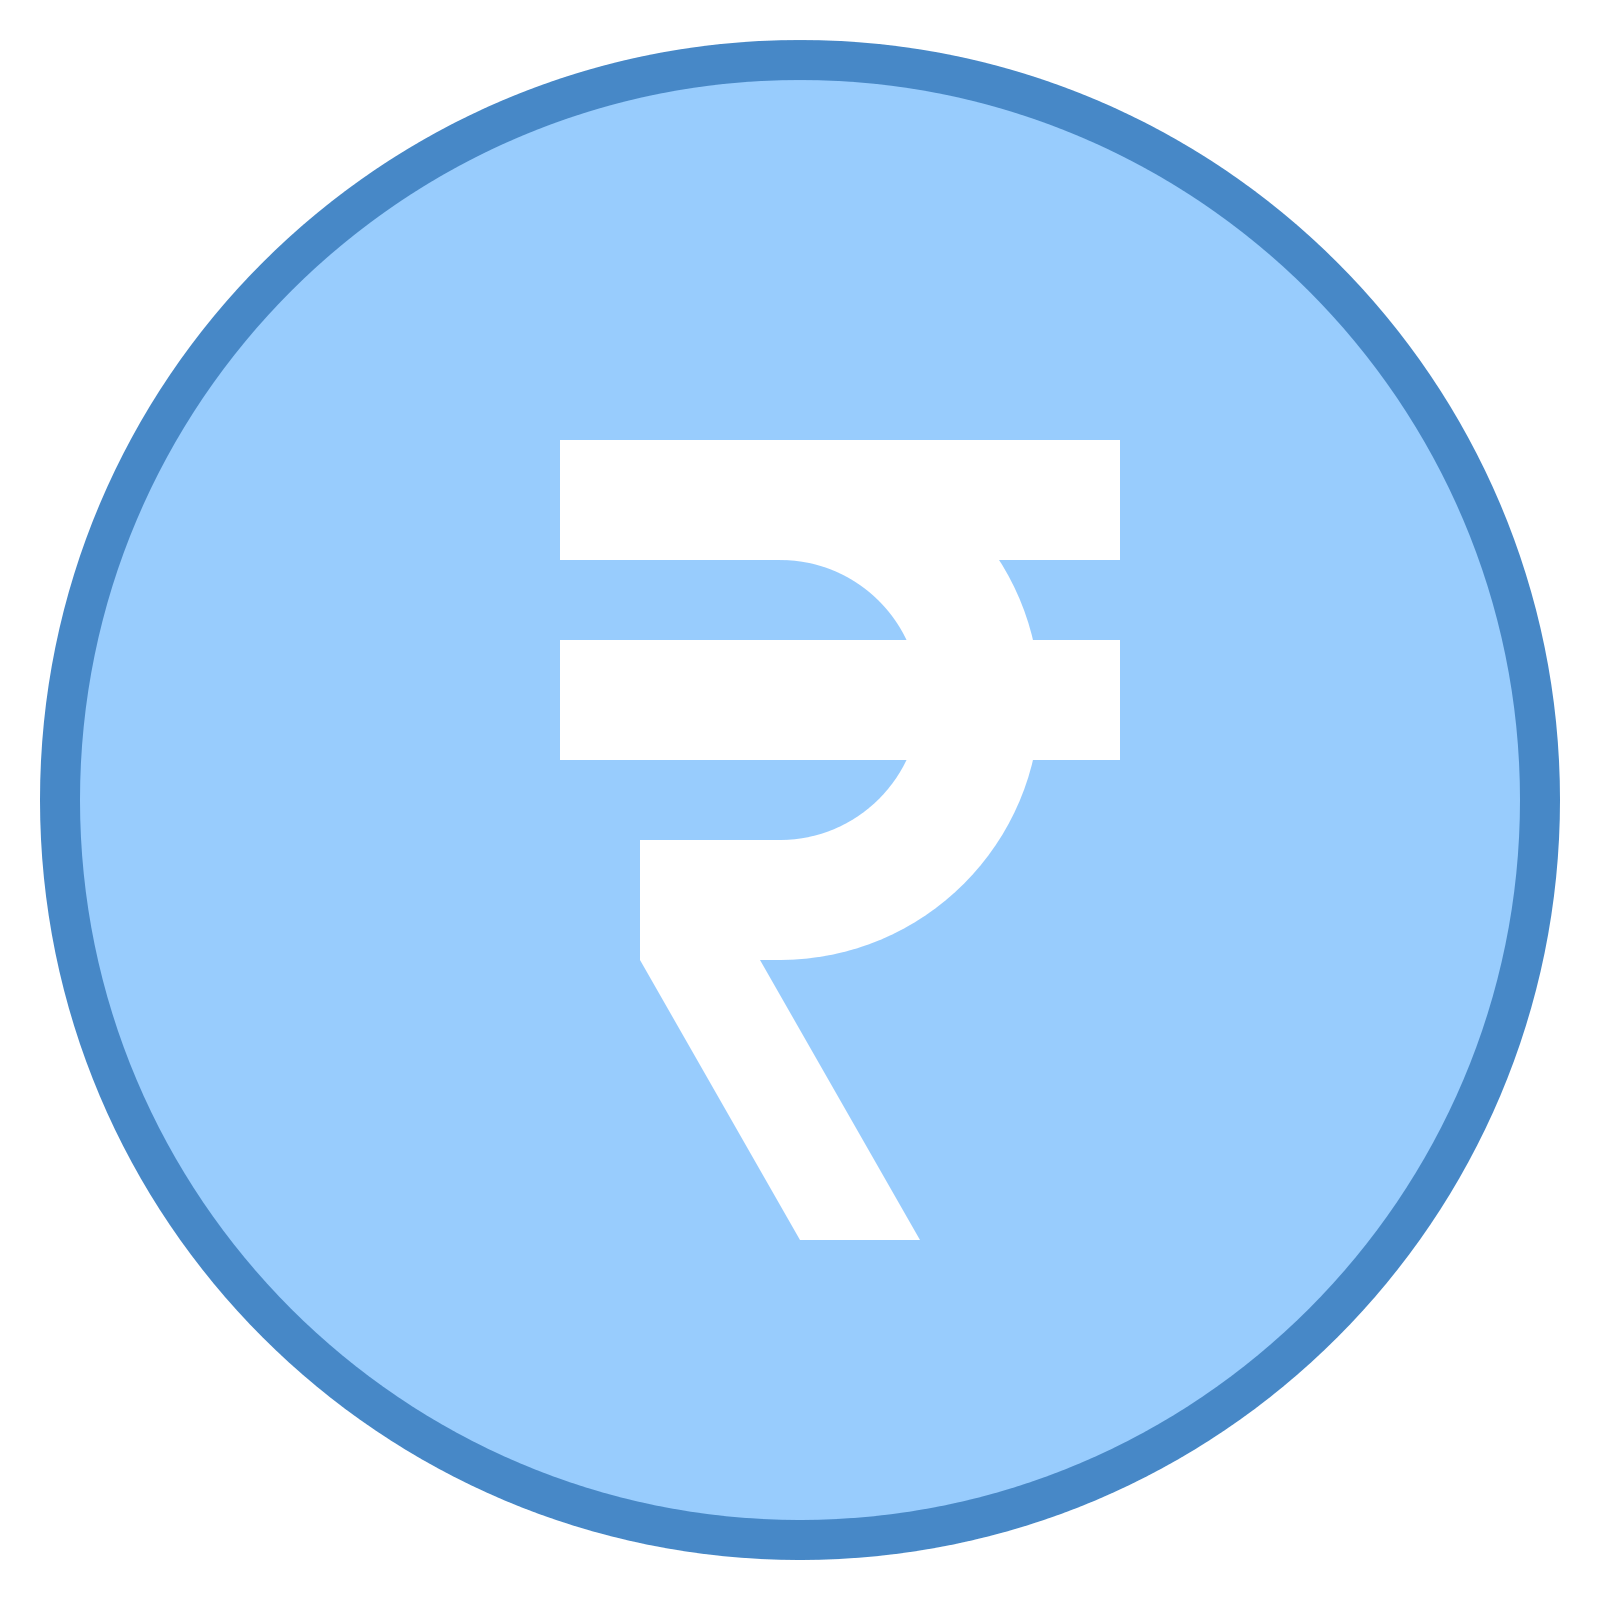 Display Currency In Indian Rupee Format With Rupee Symbol